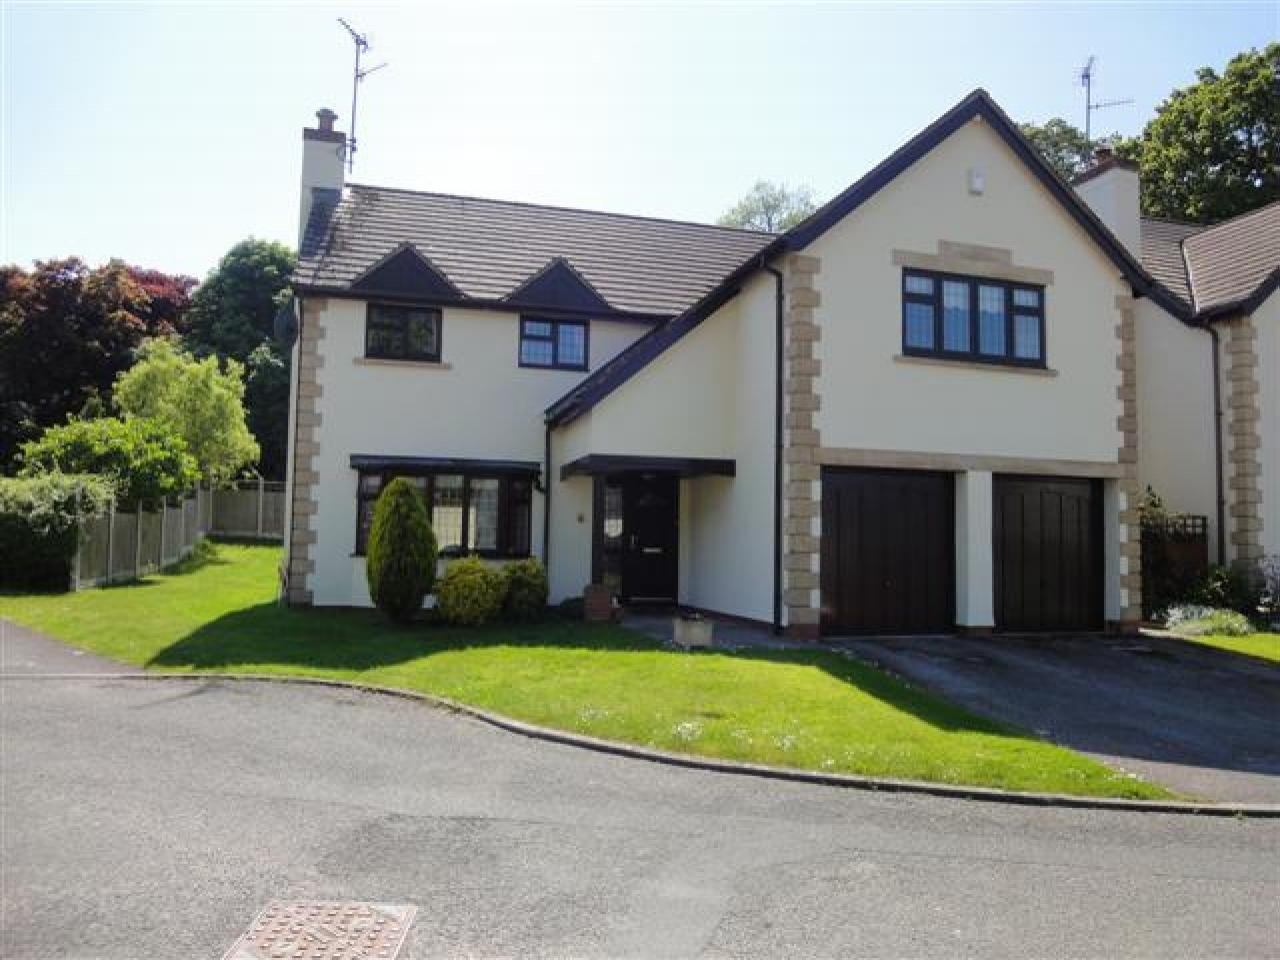 5 bedroom detached house For Sale in Abergele - Photograph 1